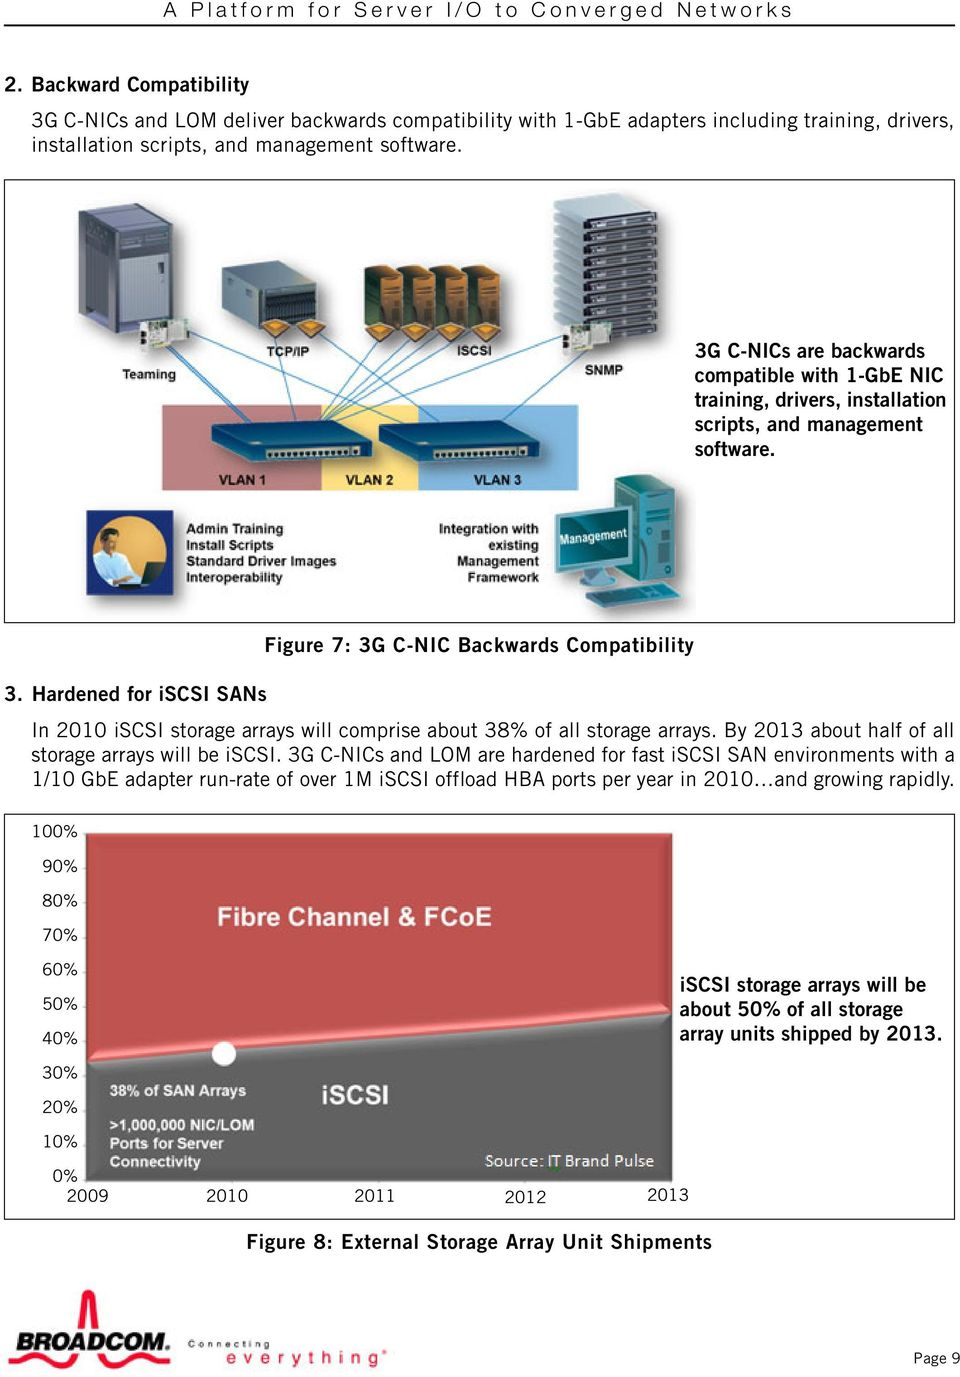 Hardened for iscsi SANs Figure 7: 3G C-NIC Backwards Compatibility In 2010 iscsi storage arrays will comprise about 38% of all storage arrays. By 2013 about half of all storage arrays will be iscsi.